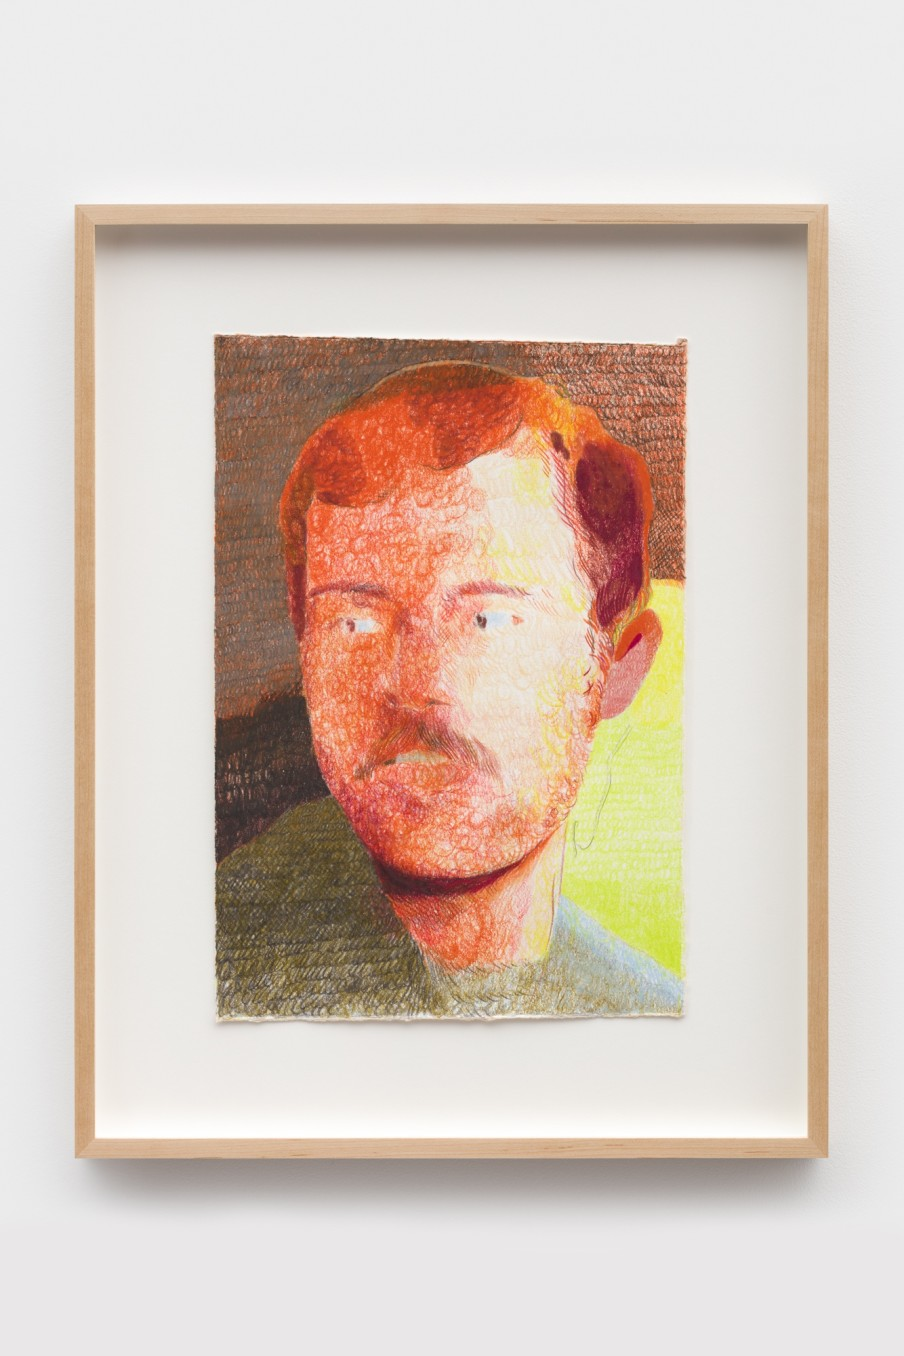 Anthony Cudahy Orange gaze, 2021 Colored pencil on paper Image: 35.6 x 25.4 cm 14 x 10 in Frame: 50.4...